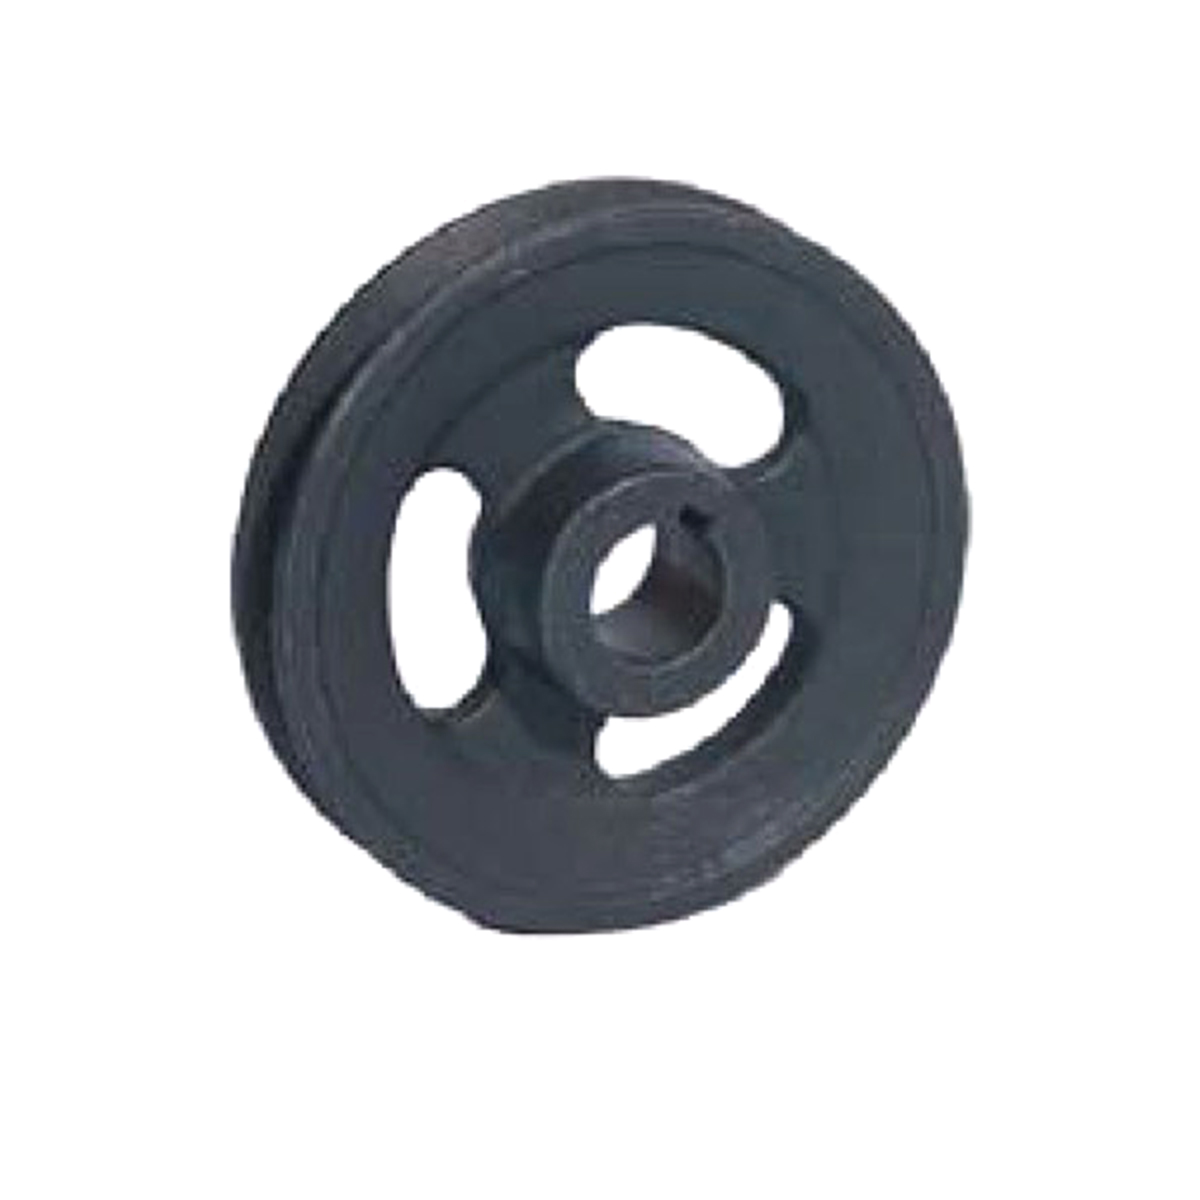 30220-60V Dixie Chopper Pulley BK 55